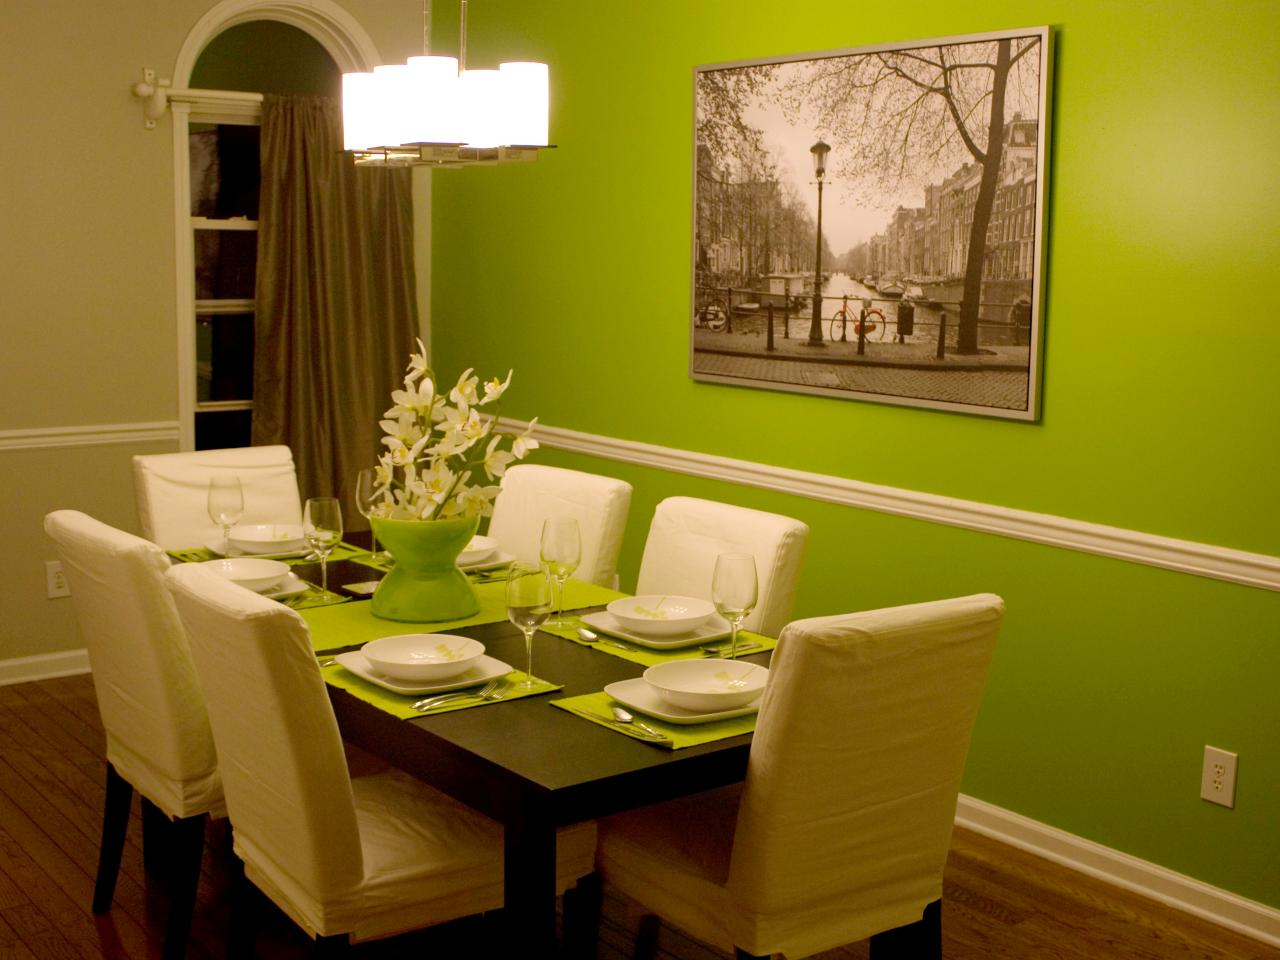 Slipcover trends and styles diy home decor and - How to decorate a dining room ...